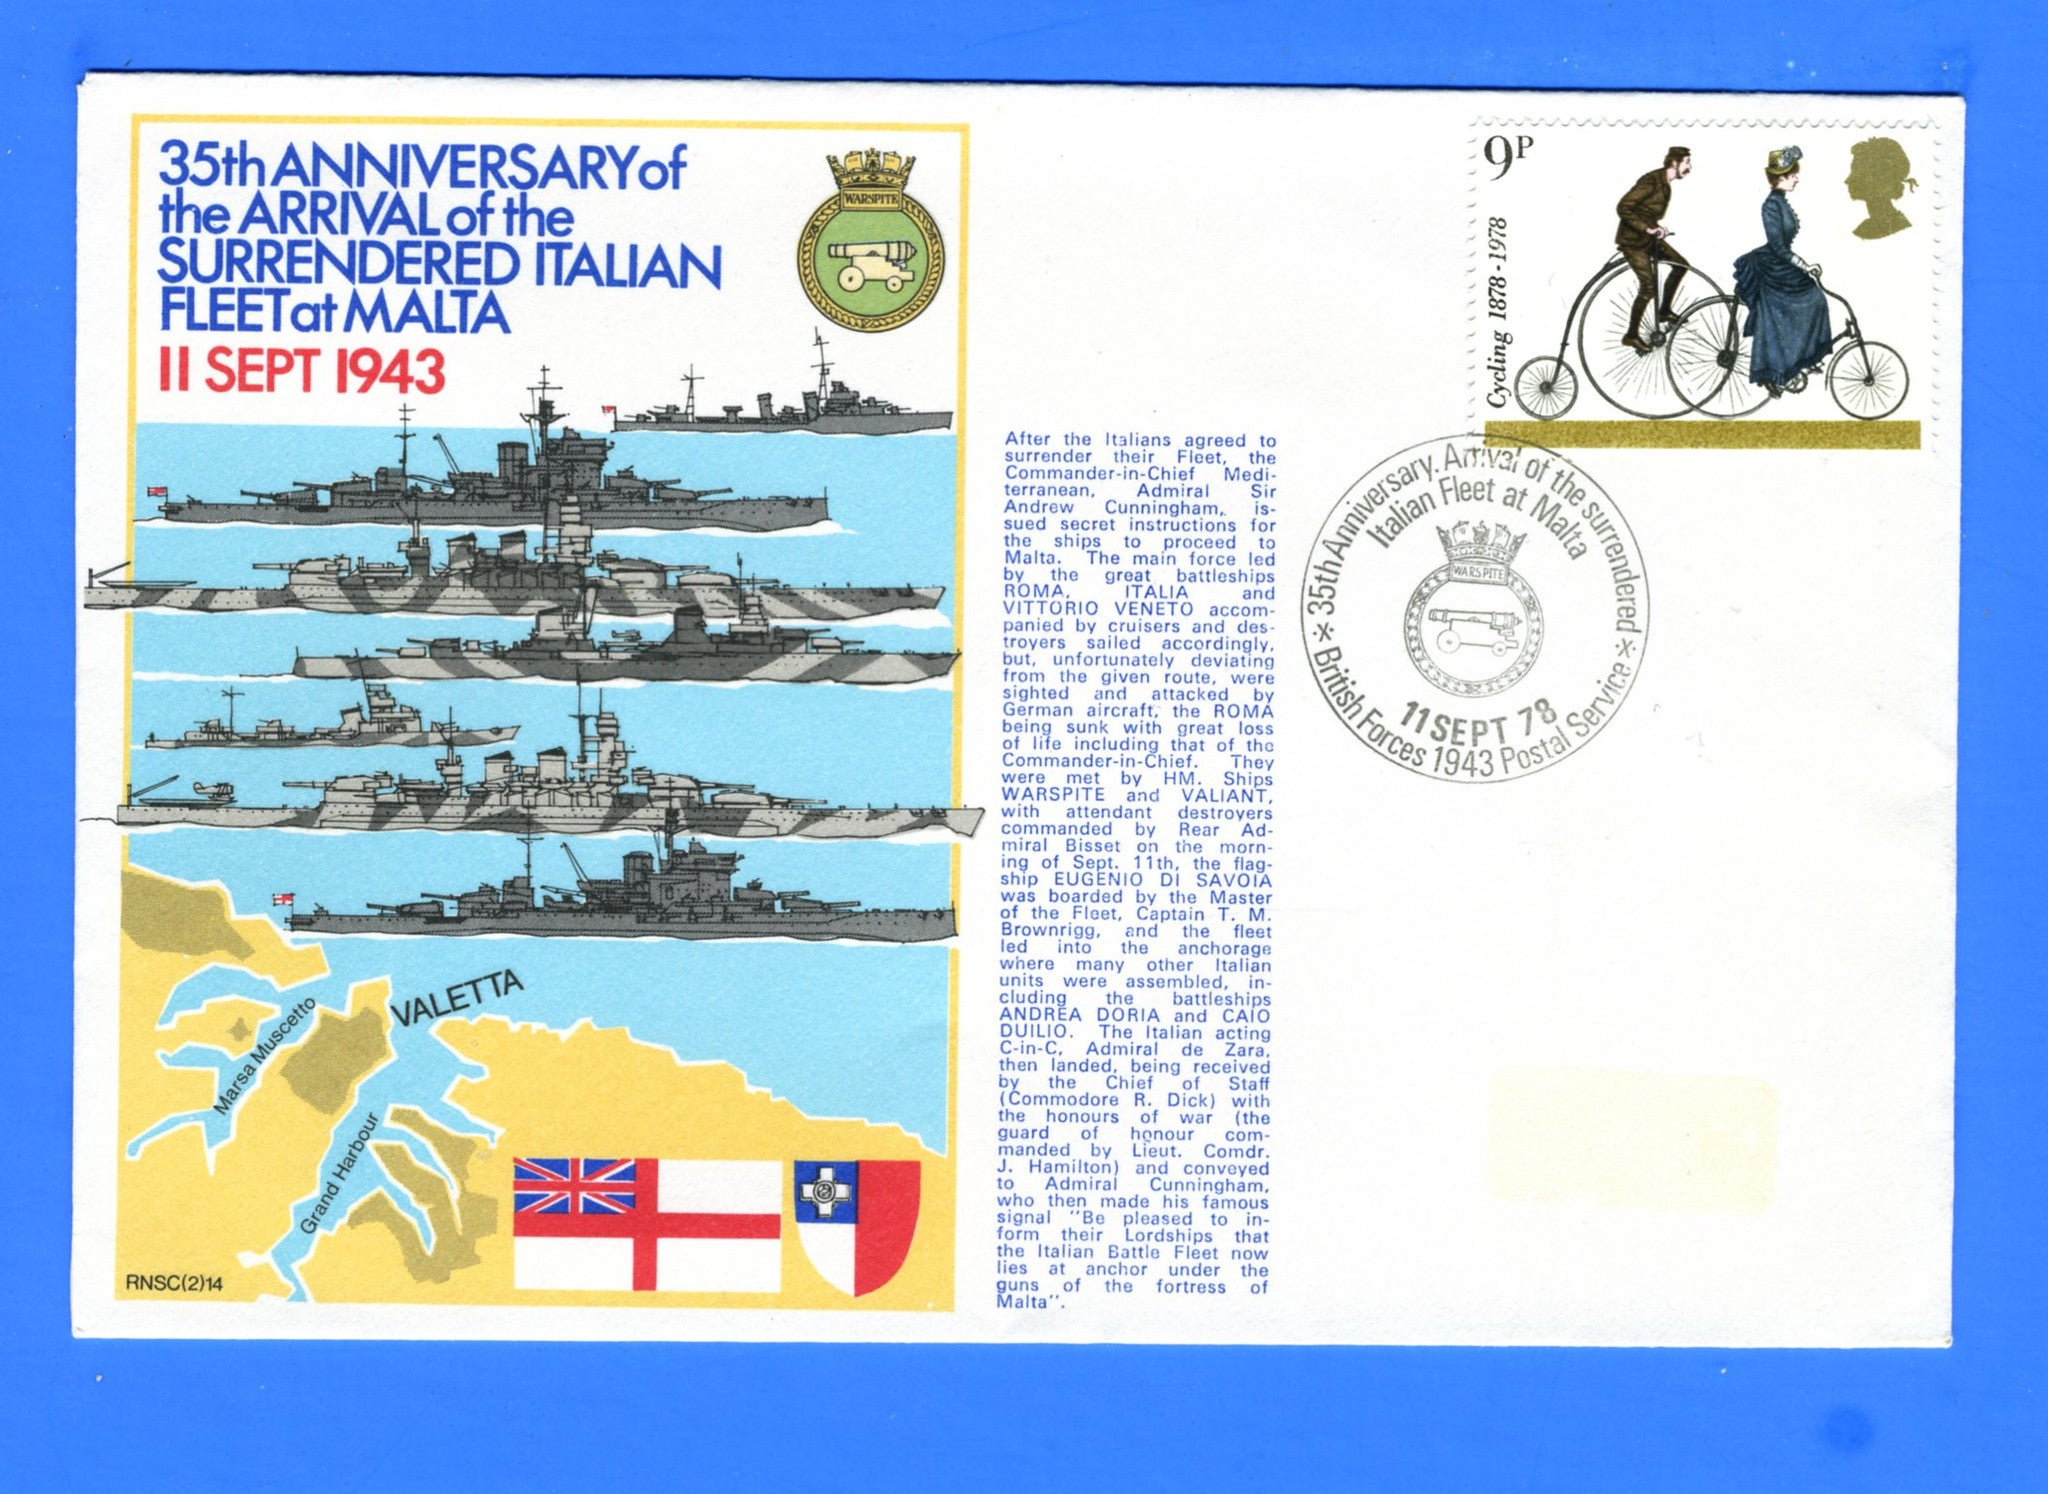 35th Anniversary of the Arrival of the Surrendered Italian Fleet September 11, 1978